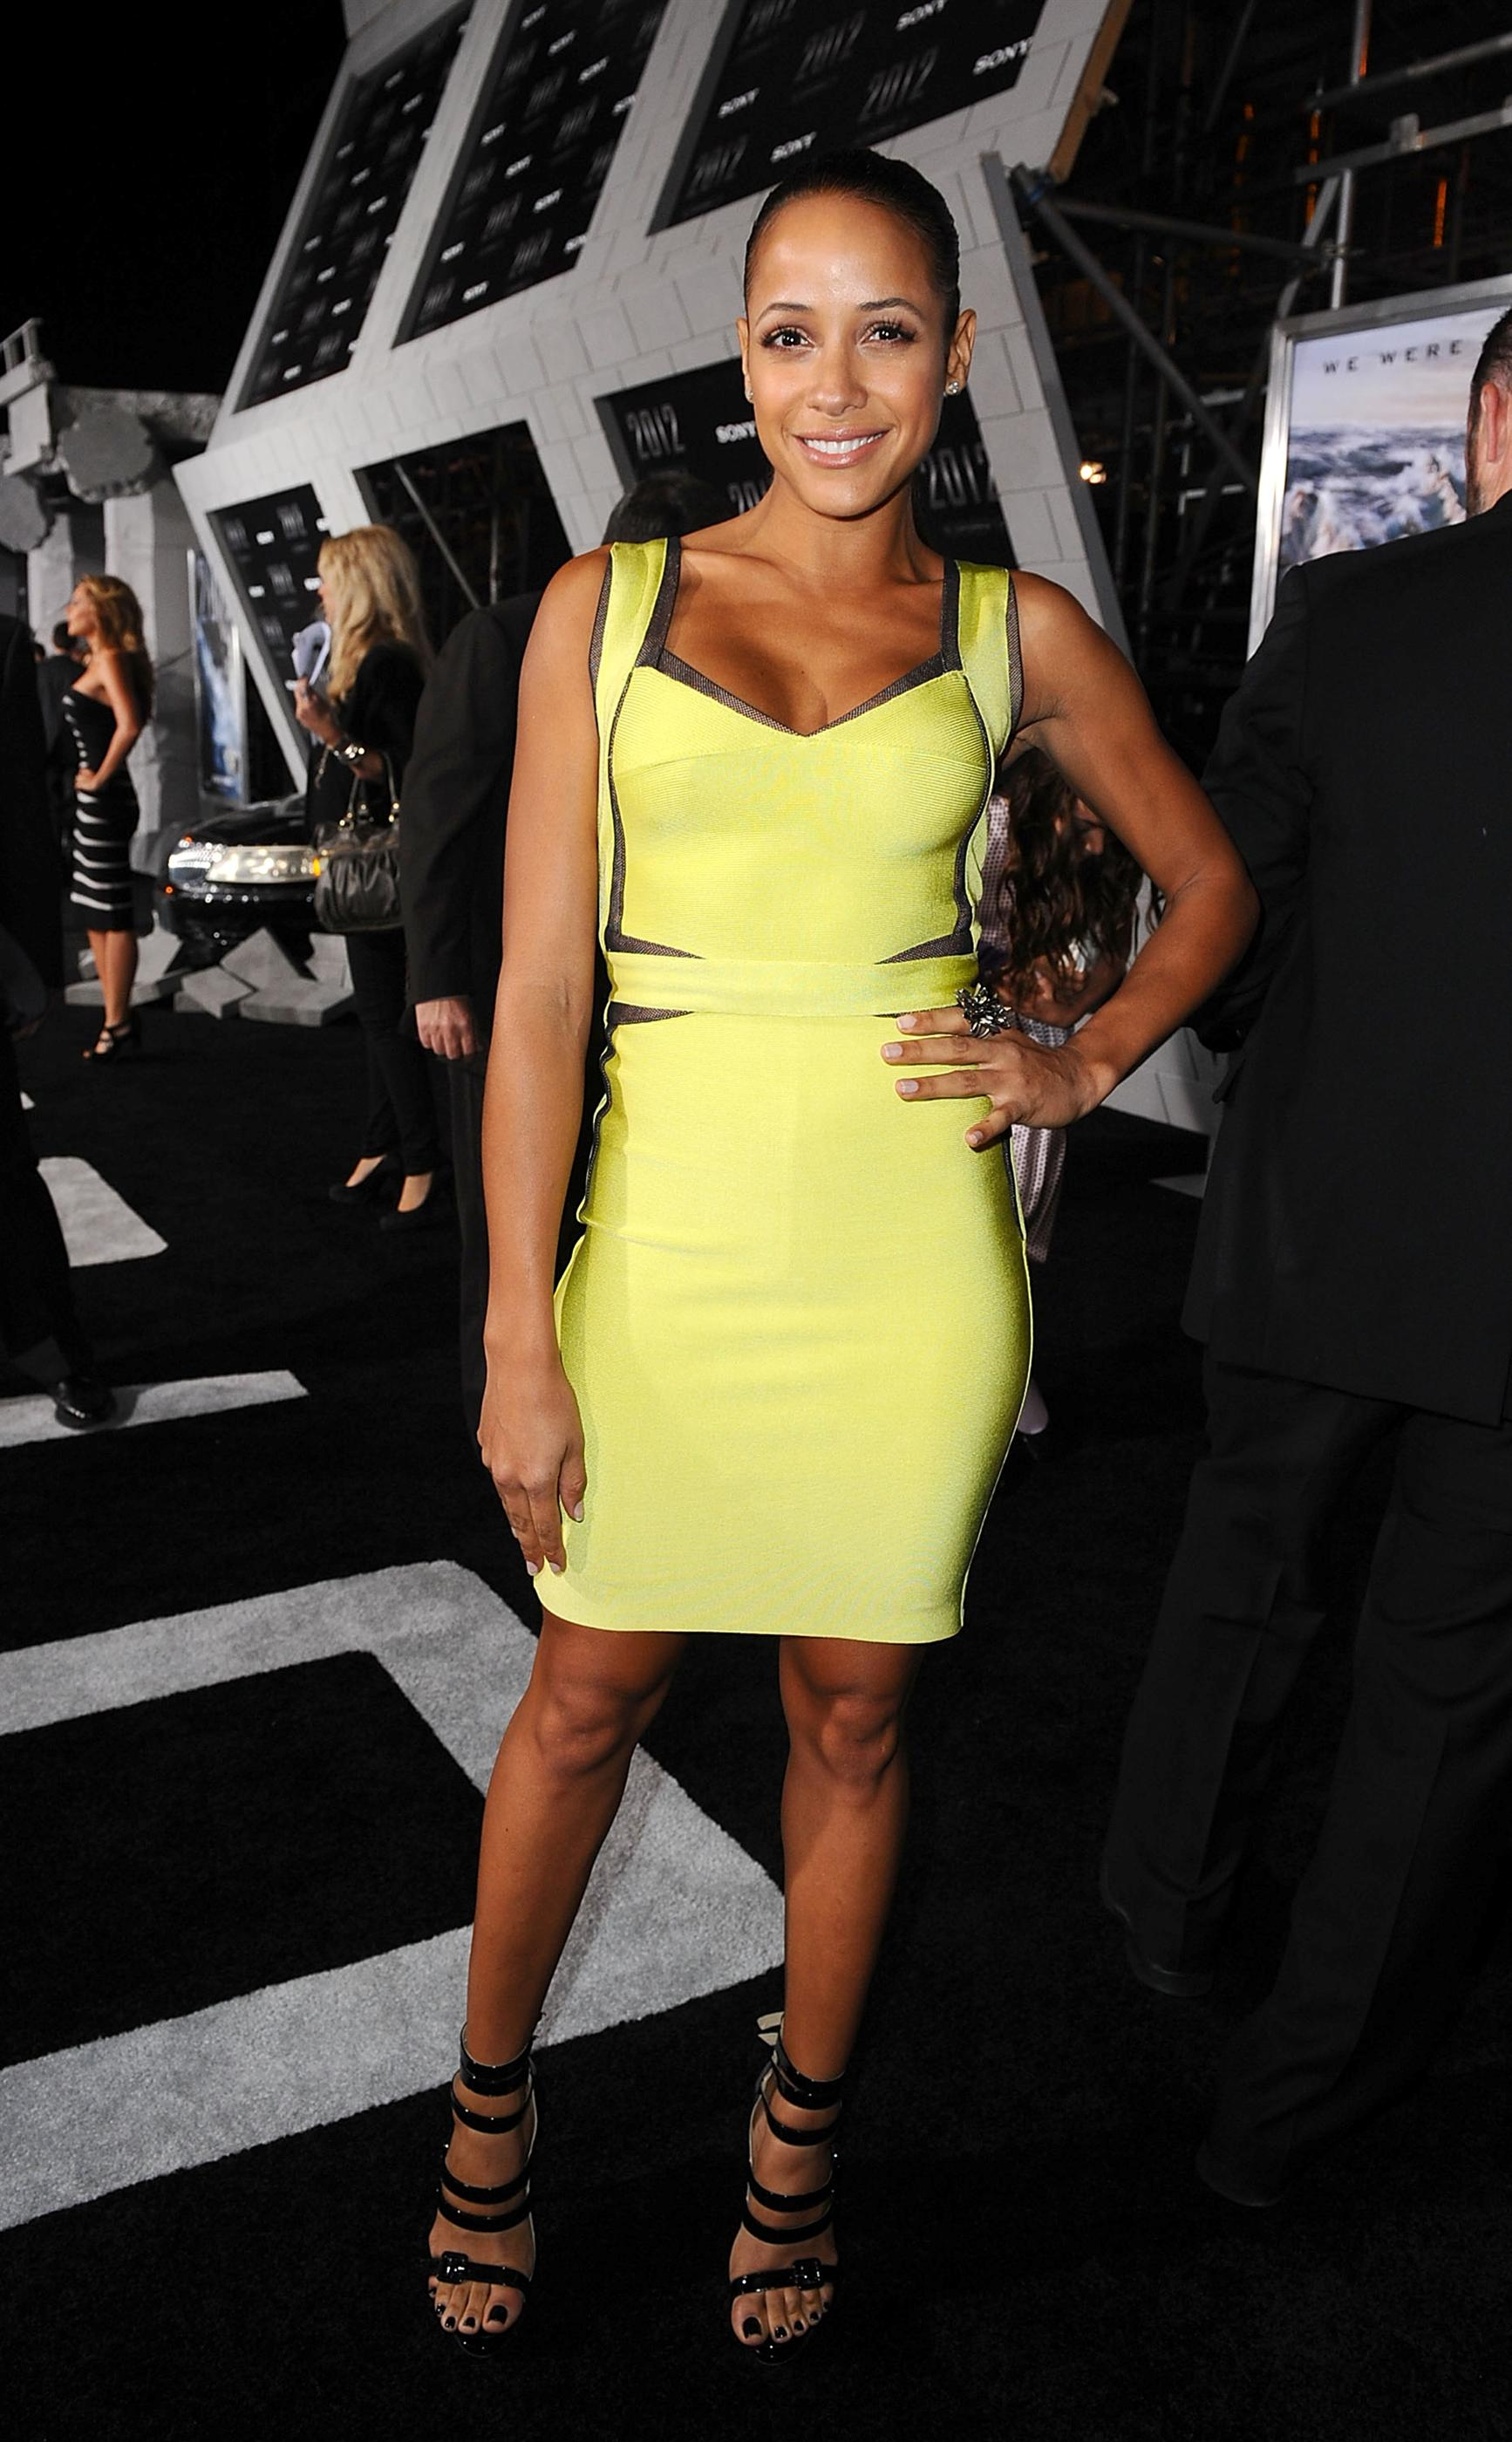 Dania-Ramirez-In-Herve-Leger-Dress